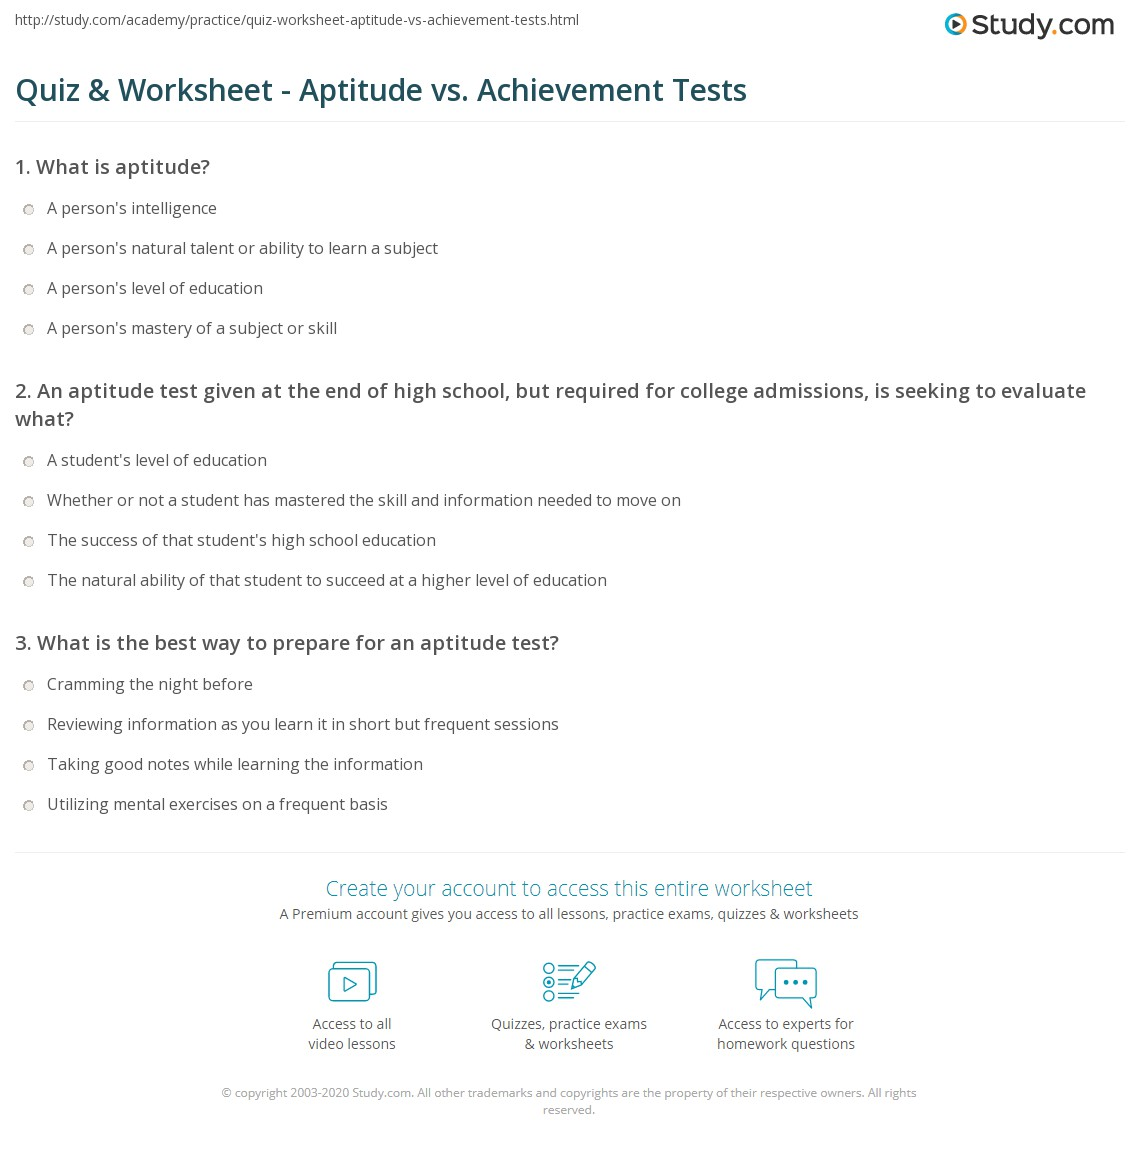 quiz worksheet aptitude vs achievement tests com an aptitude test given at the end of high school but required for college admissions is seeking to evaluate what